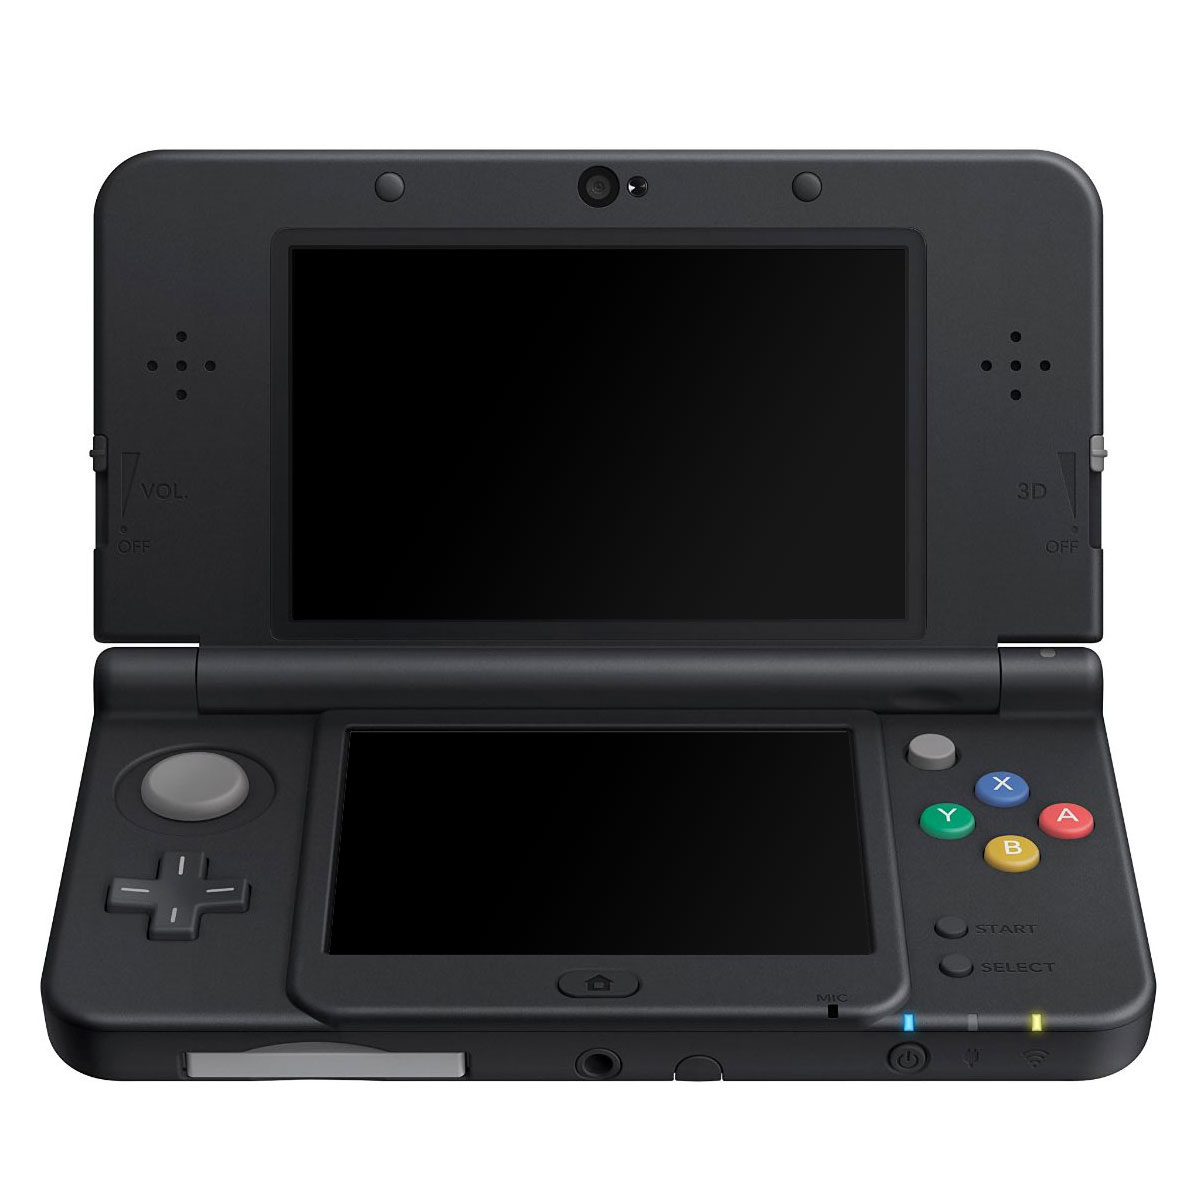 nintendo new 3ds noire console nintendo 3ds nintendo. Black Bedroom Furniture Sets. Home Design Ideas